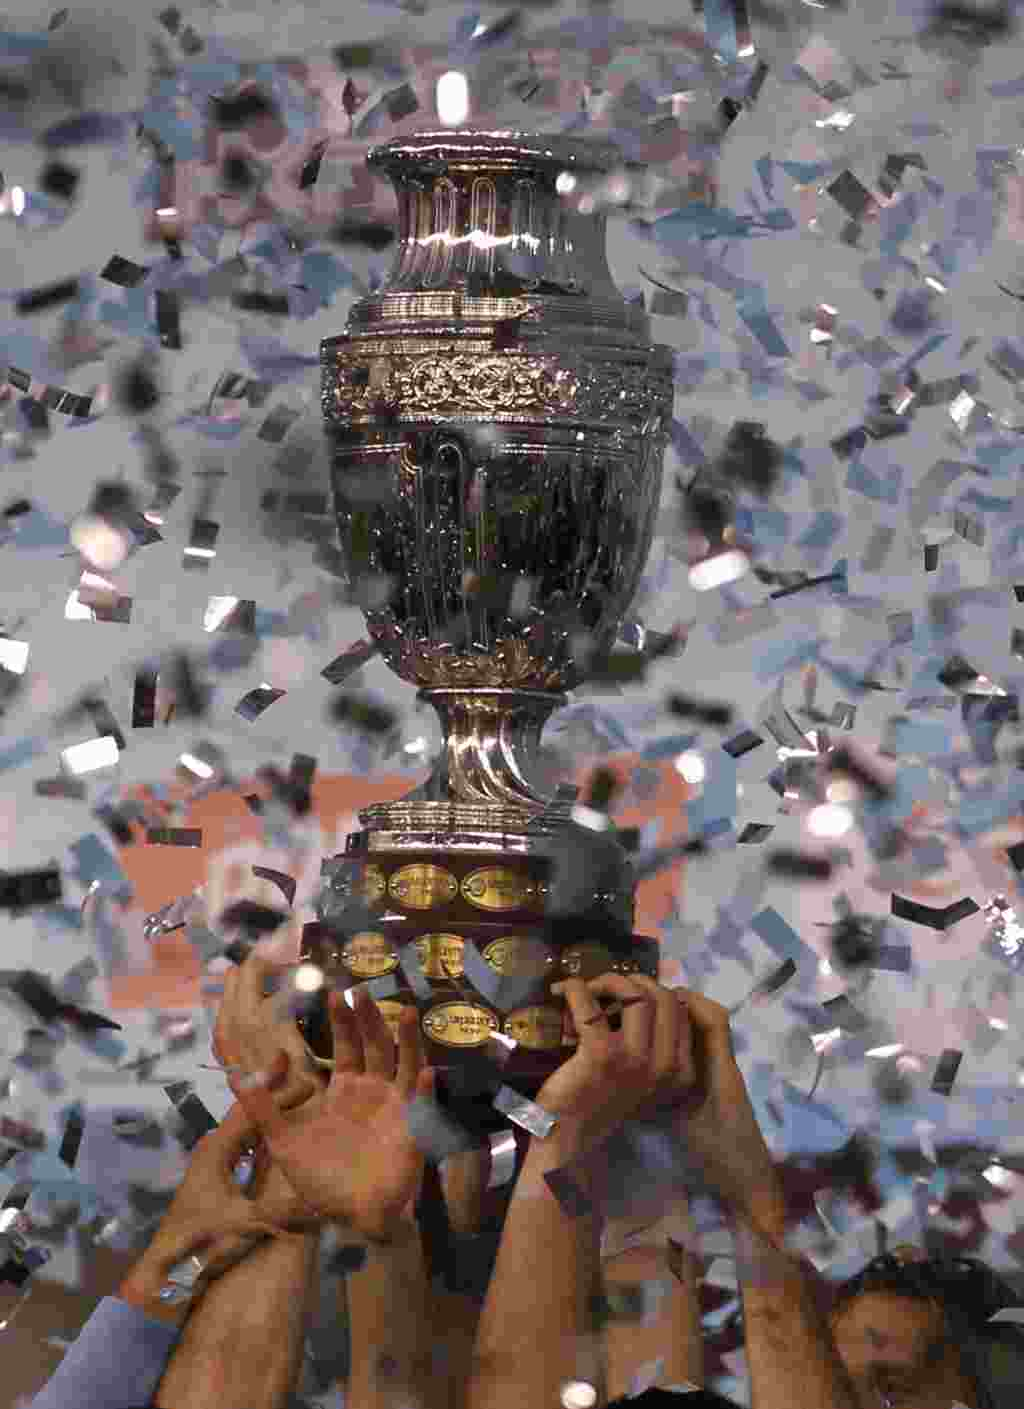 Uruguay's players hold the Copa America while celebrating at the end of the final soccer match with Paraguay in Buenos Aires, Argentina, Sunday, July 24, 2011. Uruguay won the Copa America for a record 15th time after beating Paraguay 3-0 with two goals s